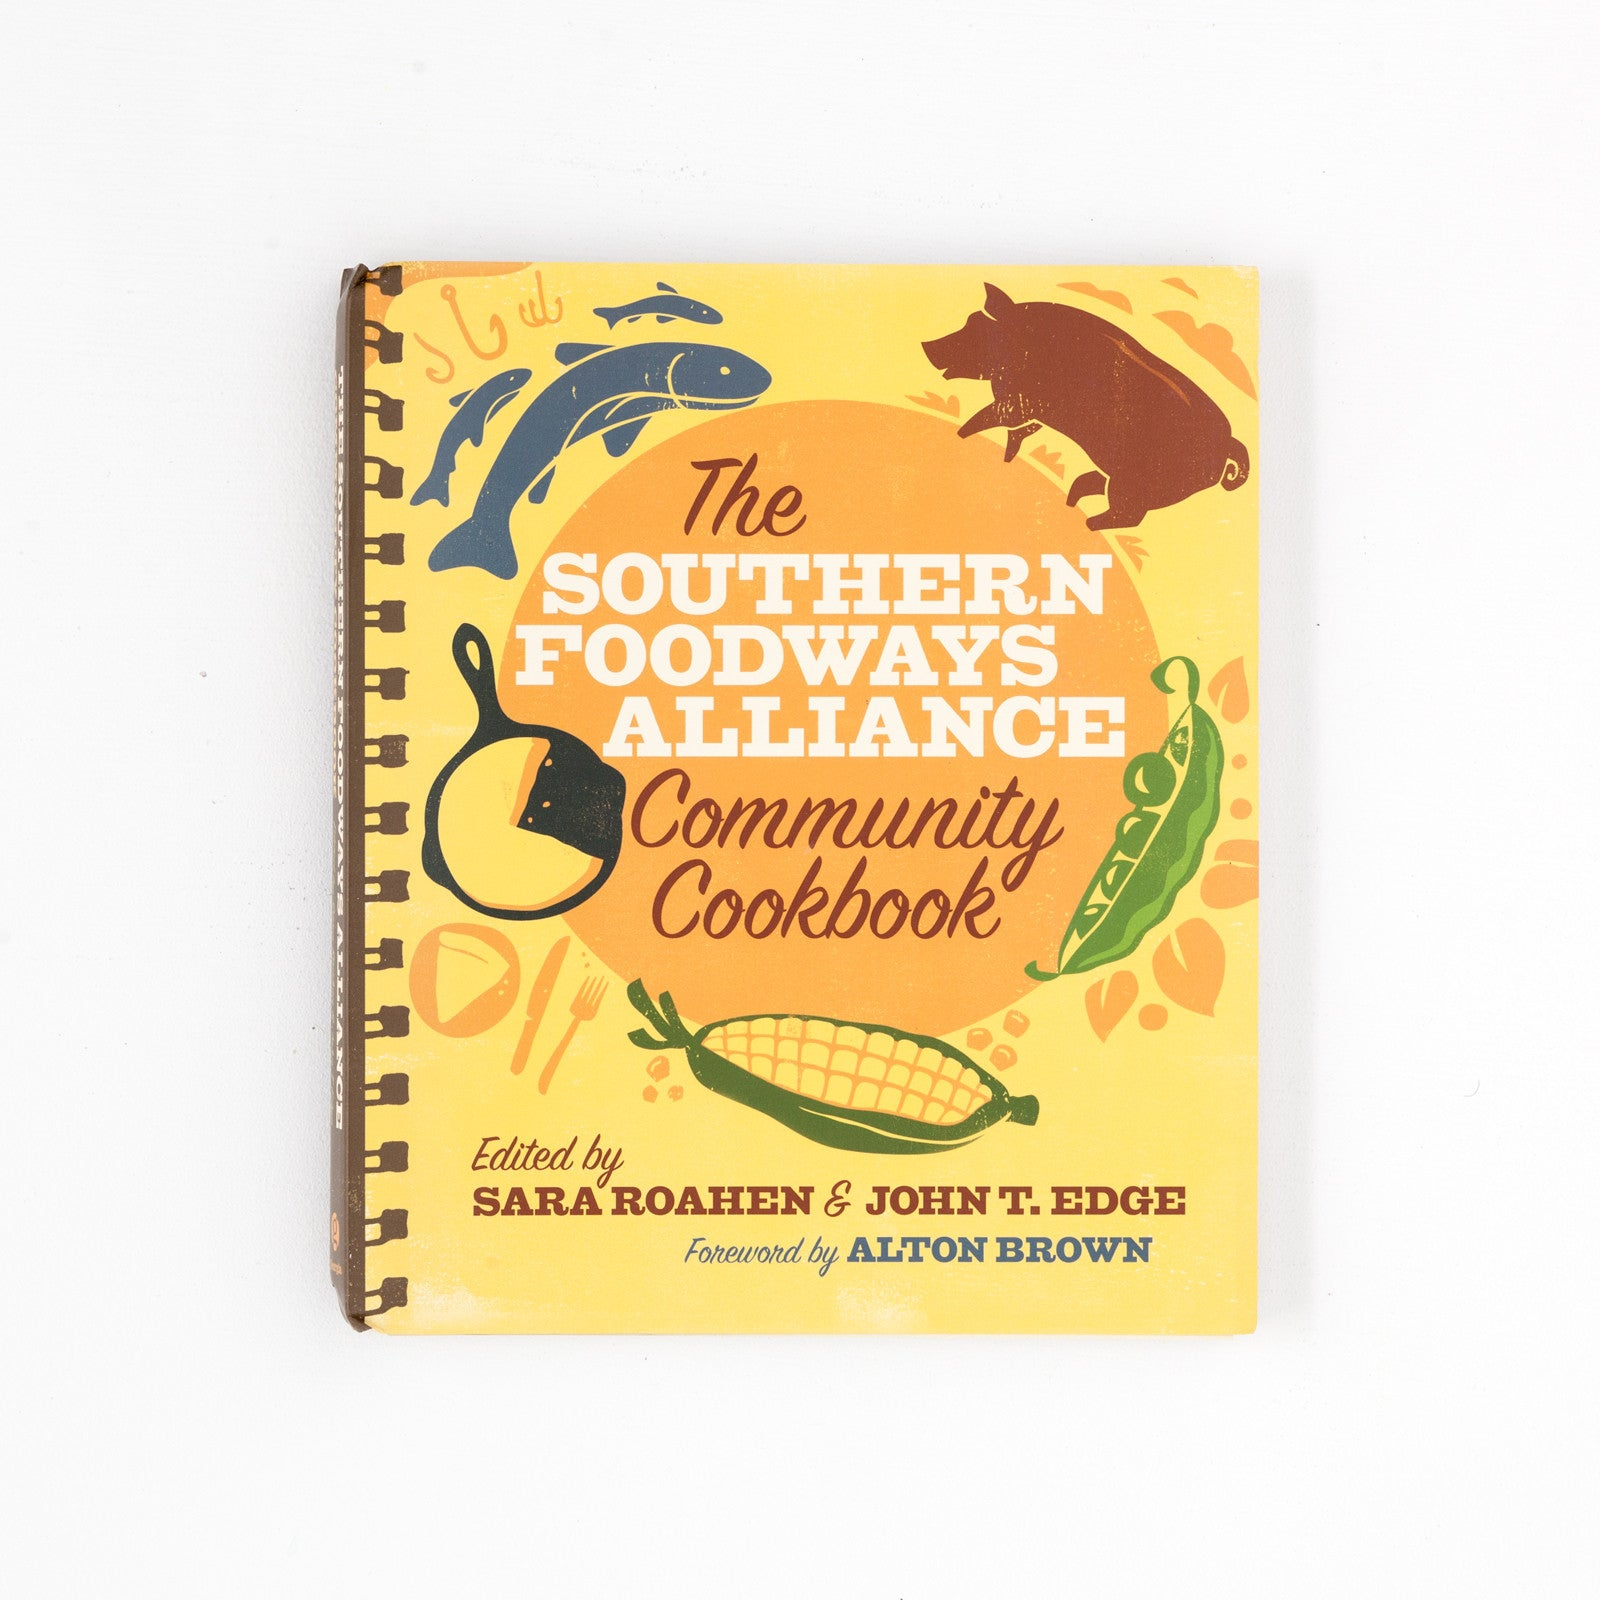 The Southern Foodways Alliance Cookbook